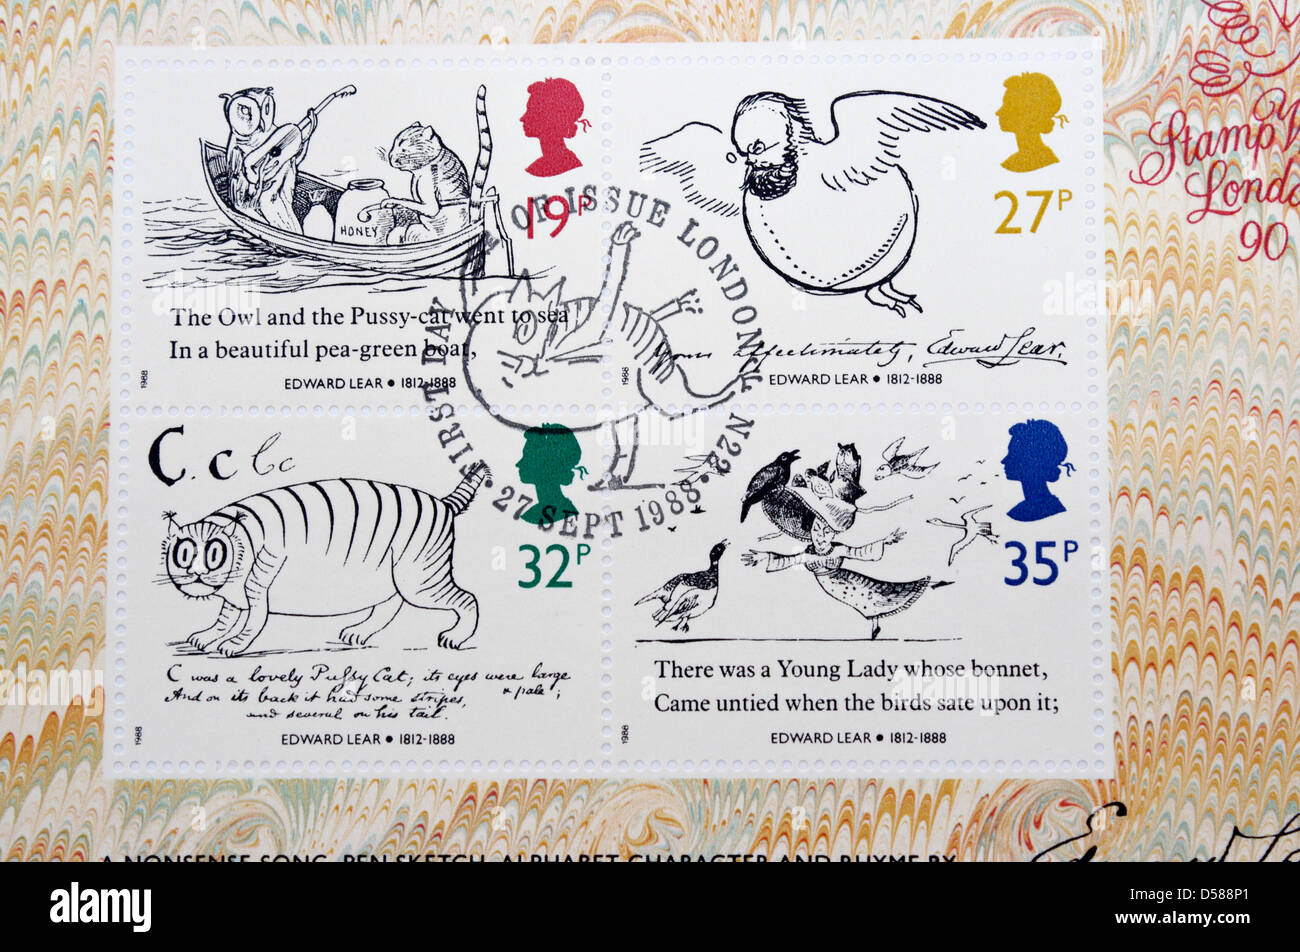 Set of stamps to commemorate the death year of Edward Lear - Stock Image